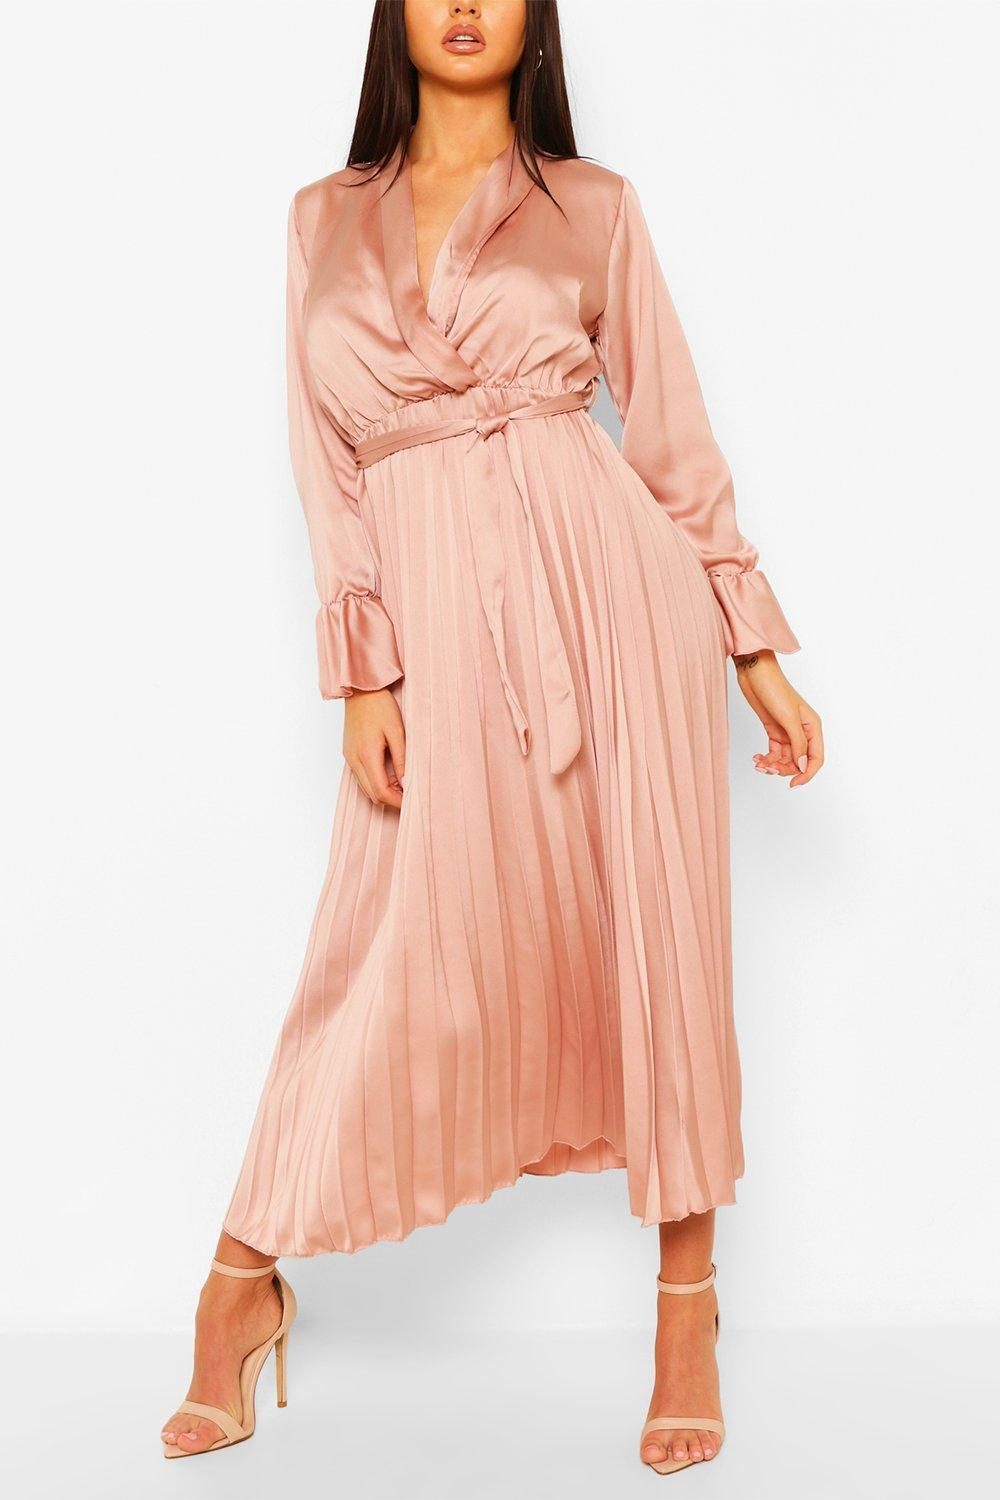 70s Prom, Formal, Evening, Party Dresses Womens Satin Pleated Midaxi Dress - Pink - 10 $30.00 AT vintagedancer.com